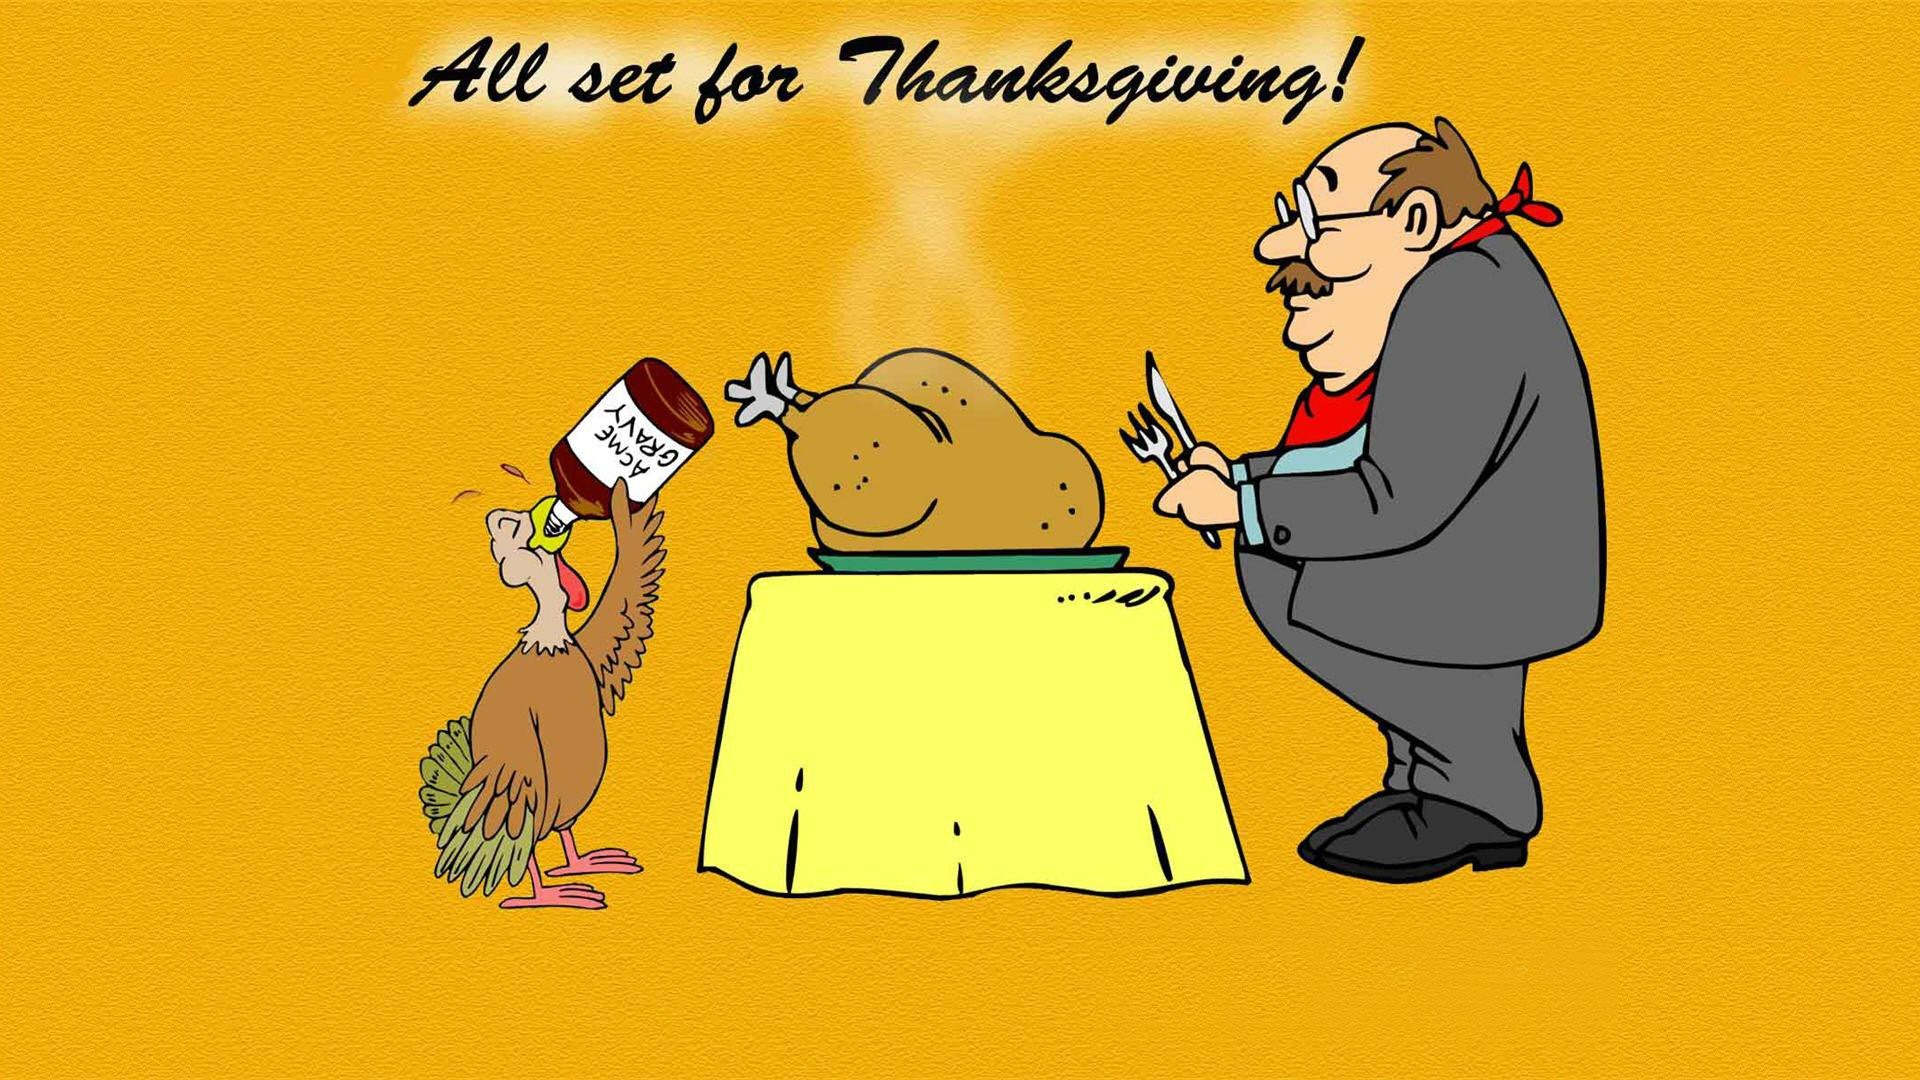 1920x1080 Thanksgivings For Desktop. UPLOAD. TAGS: Thanksgiving Holiday ...